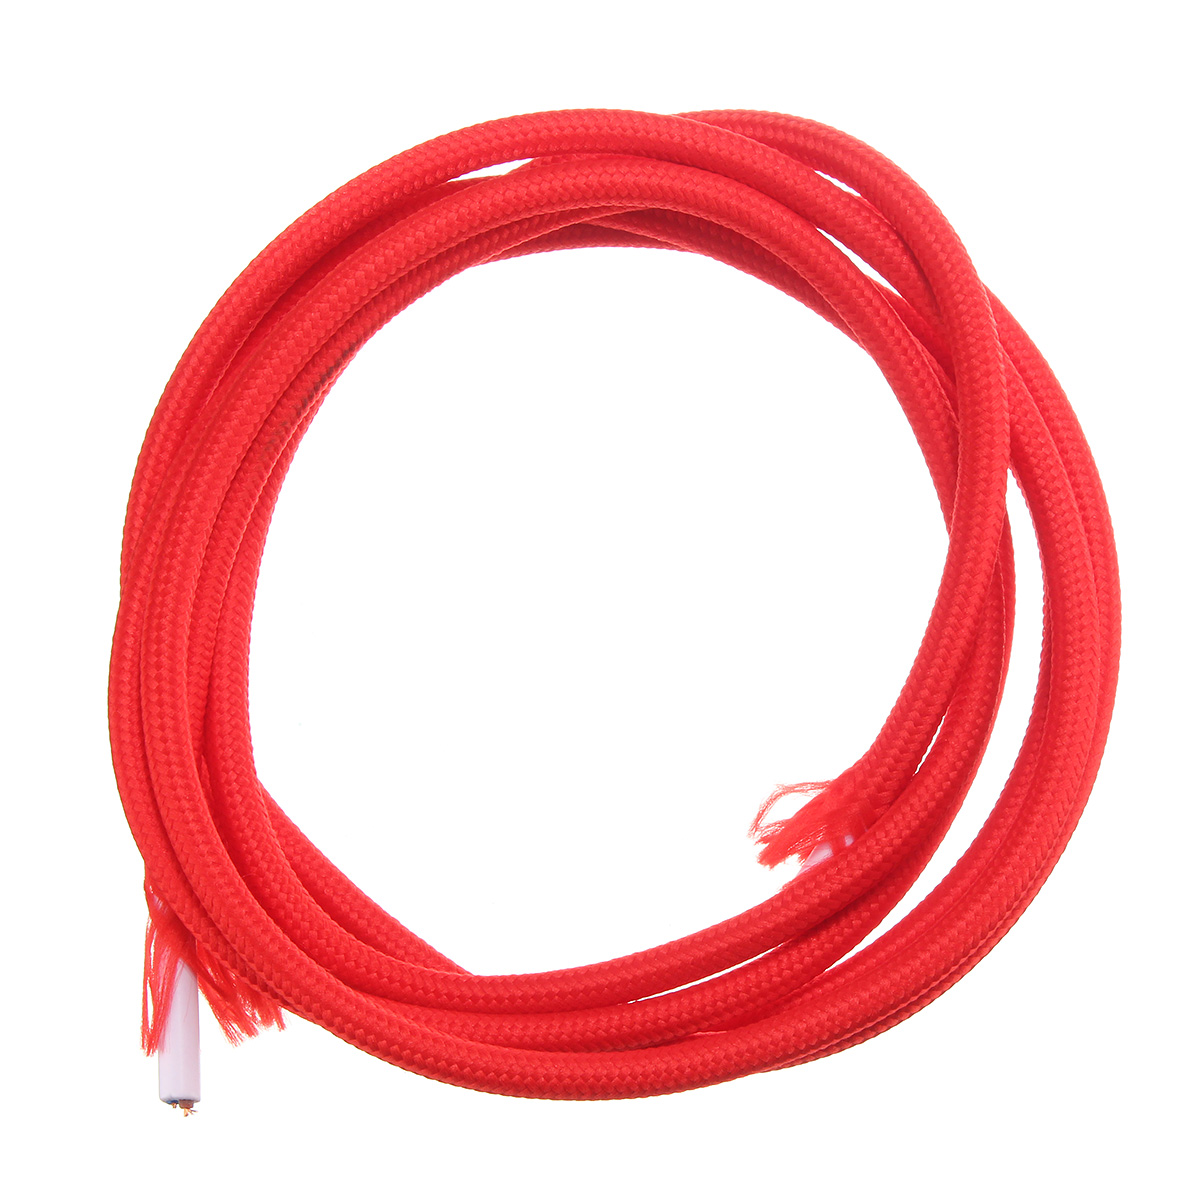 2M 2 Cord Color Vintage Twist Braided Fabric Light Cable Electric ...